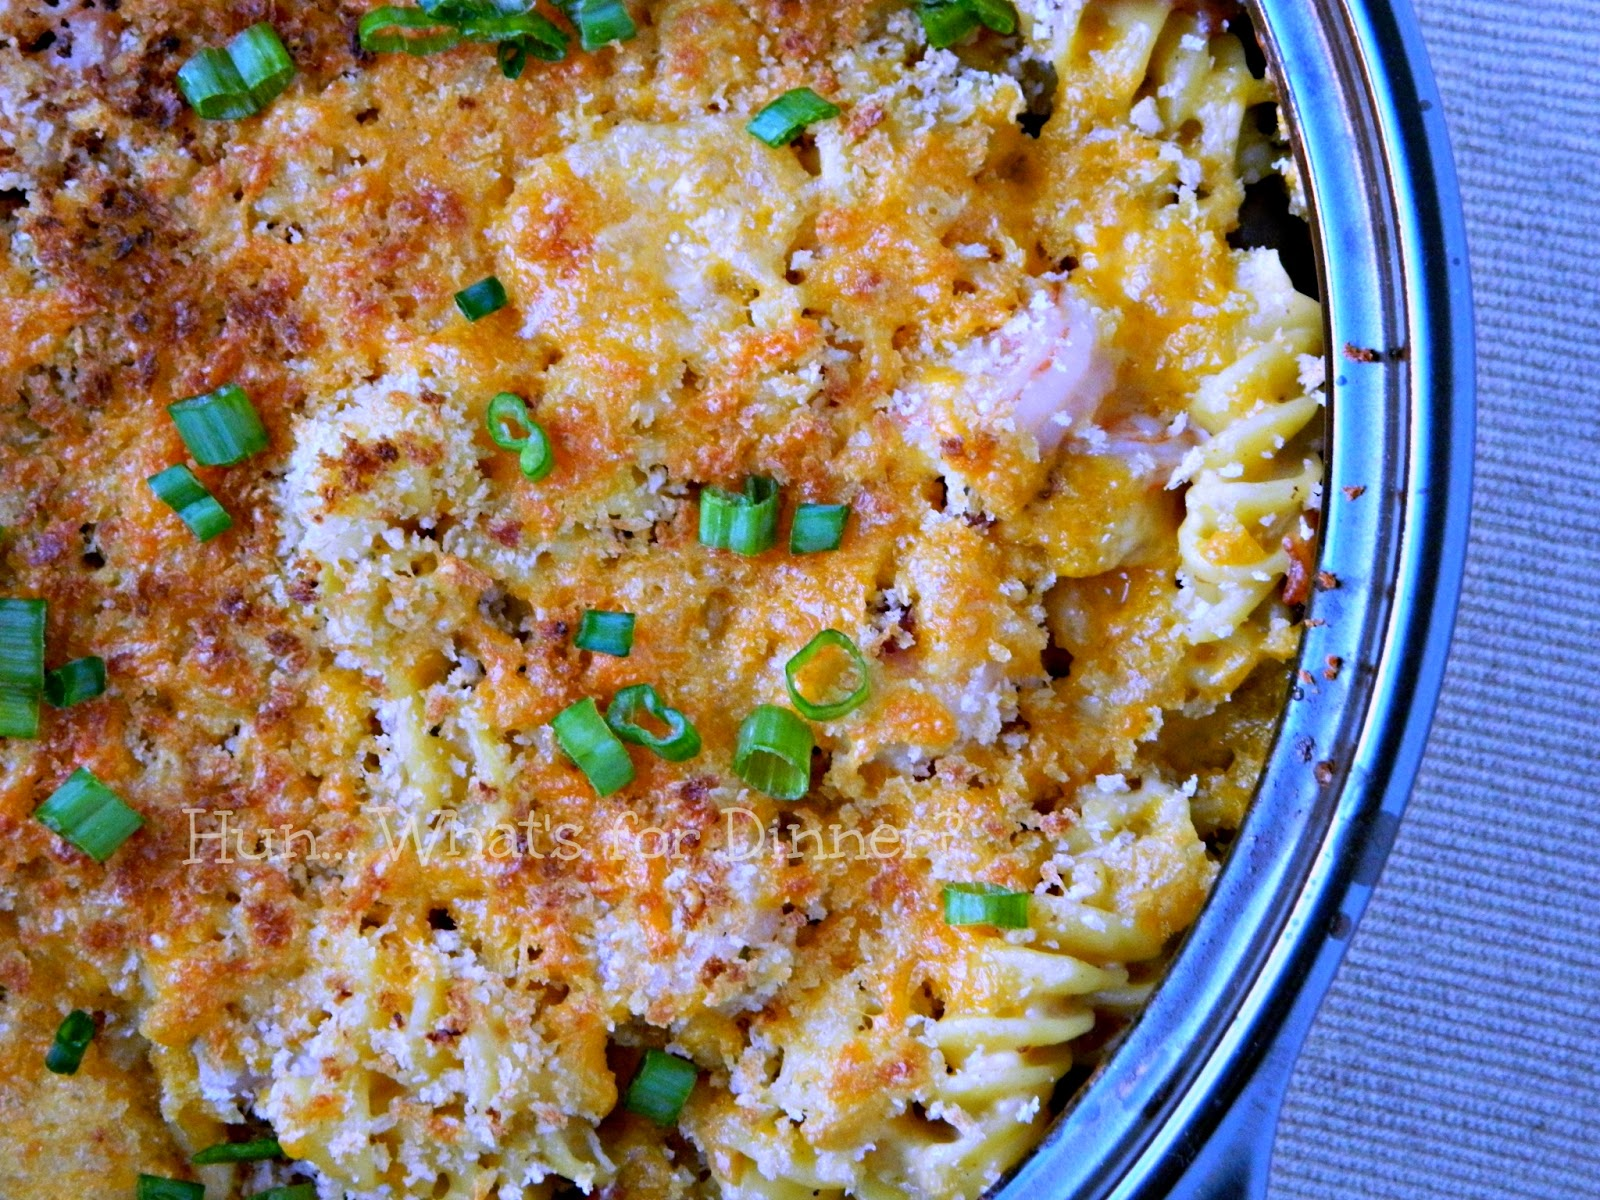 Baked Mac 'n Cheese with Shrimp and Bacon www.hunwhatsfordinner.com